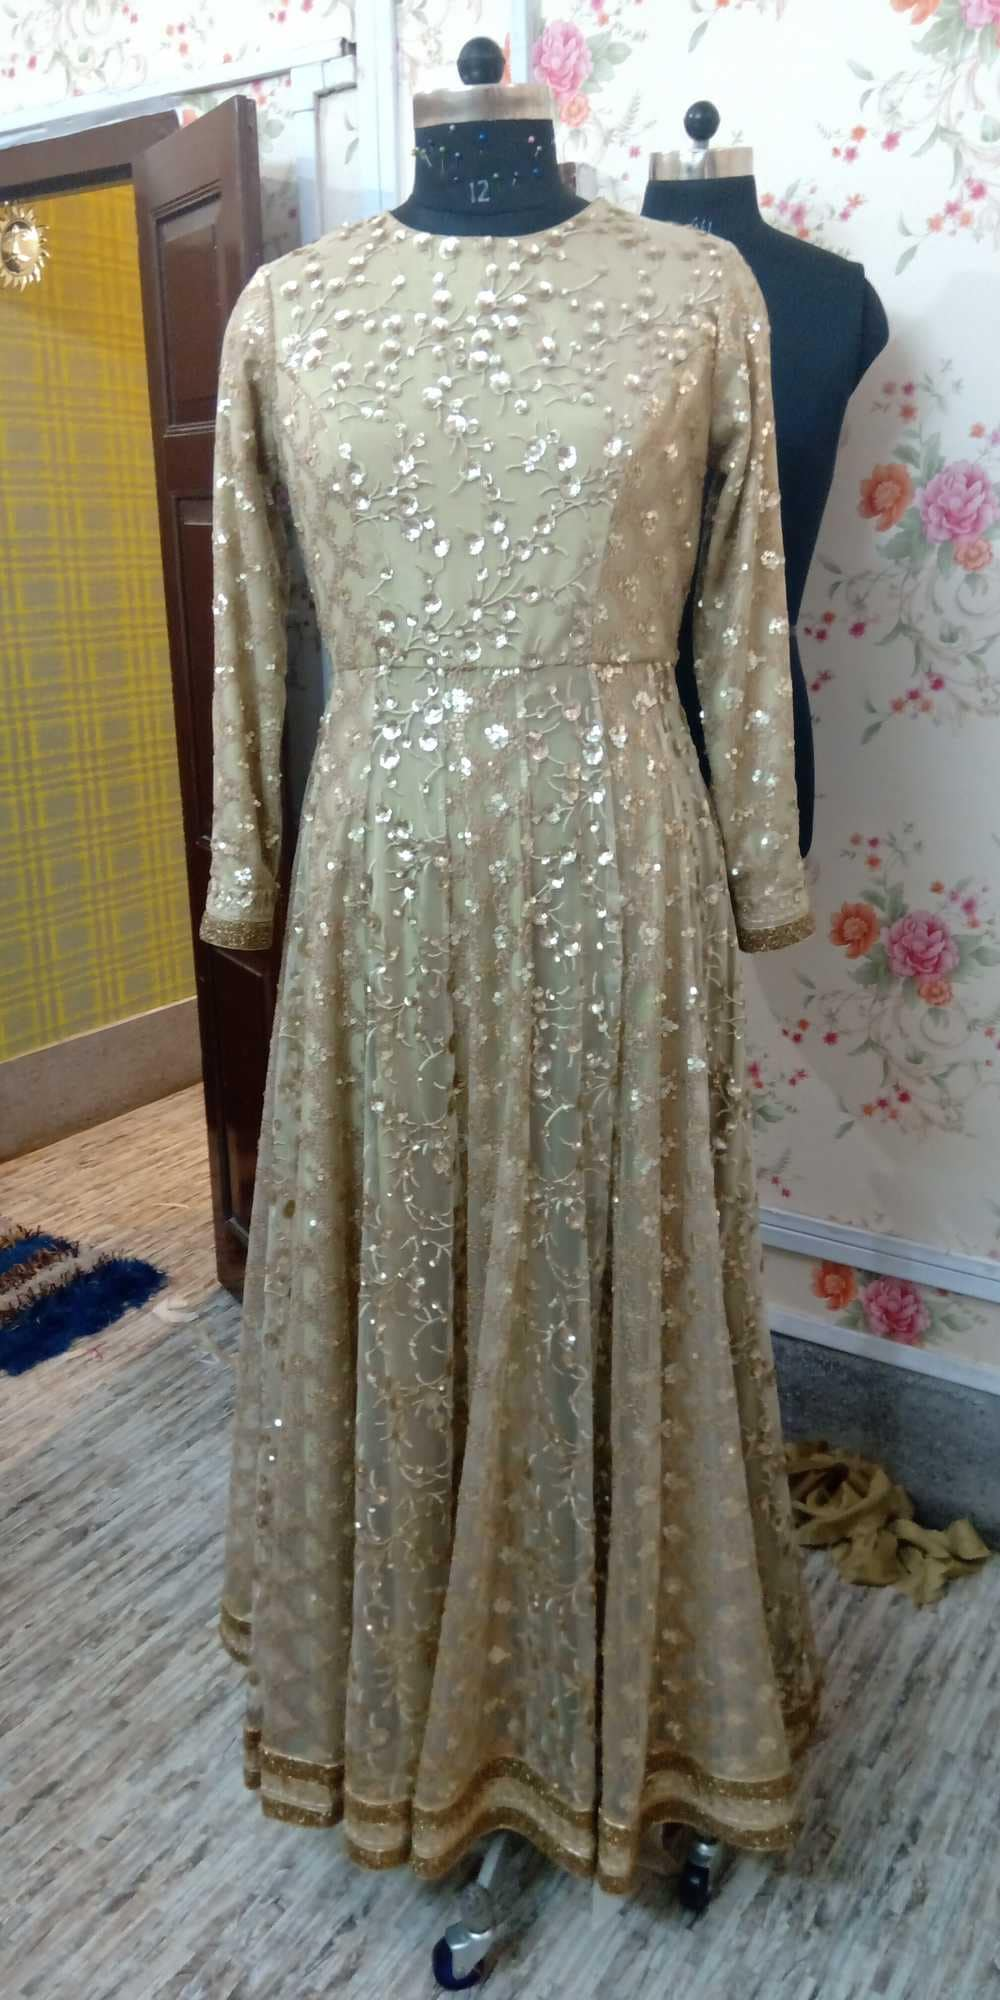 570cae95 Top 100 Kids Dress Manufacturers in Burrabazar, Kolkata - Best ...